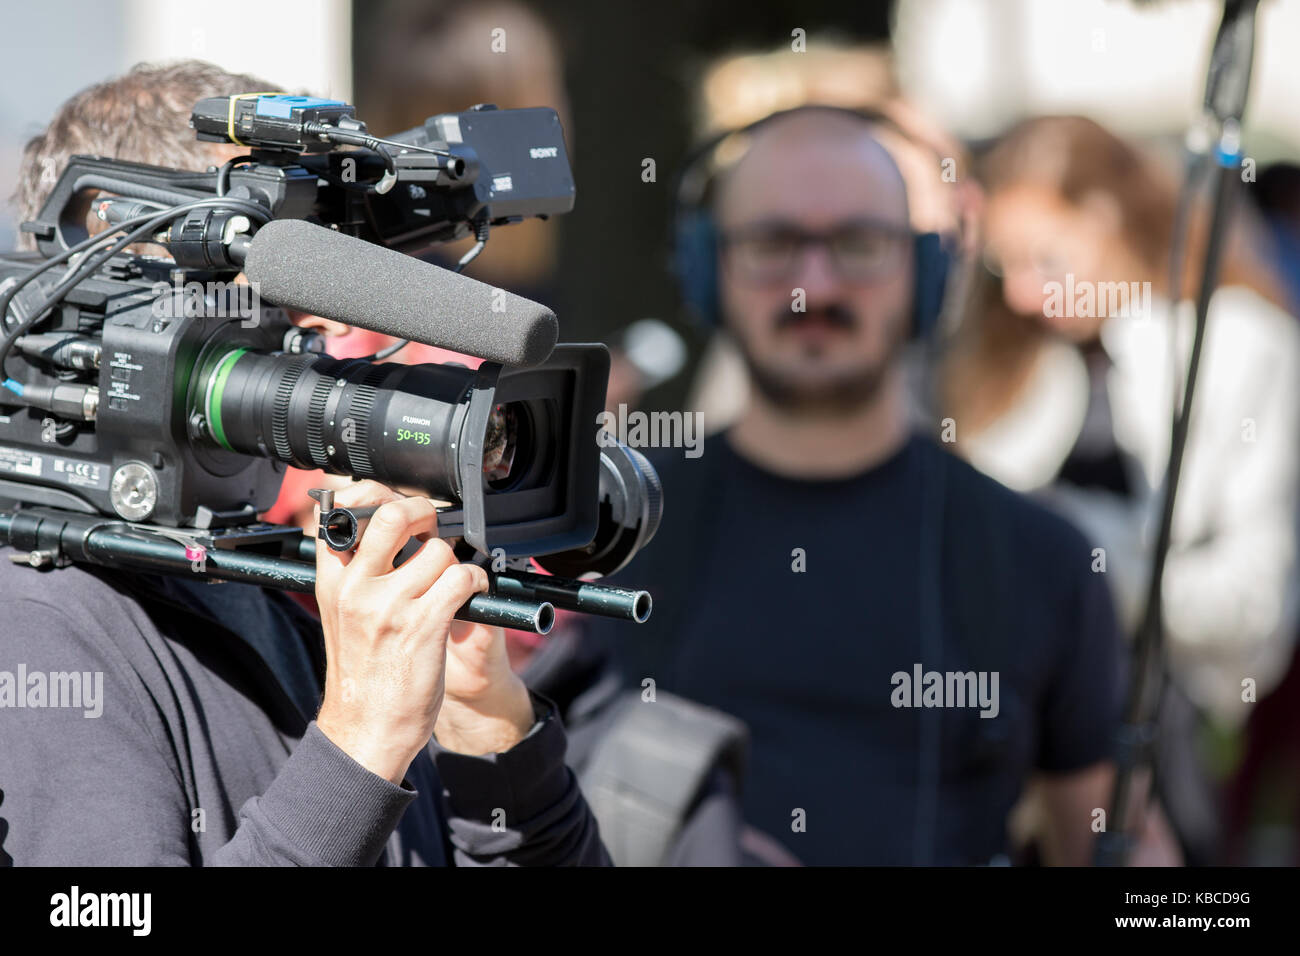 Milan, Italy - September 22, 2017: cameraman at work during the Armani parade, photographed on the street - Stock Image